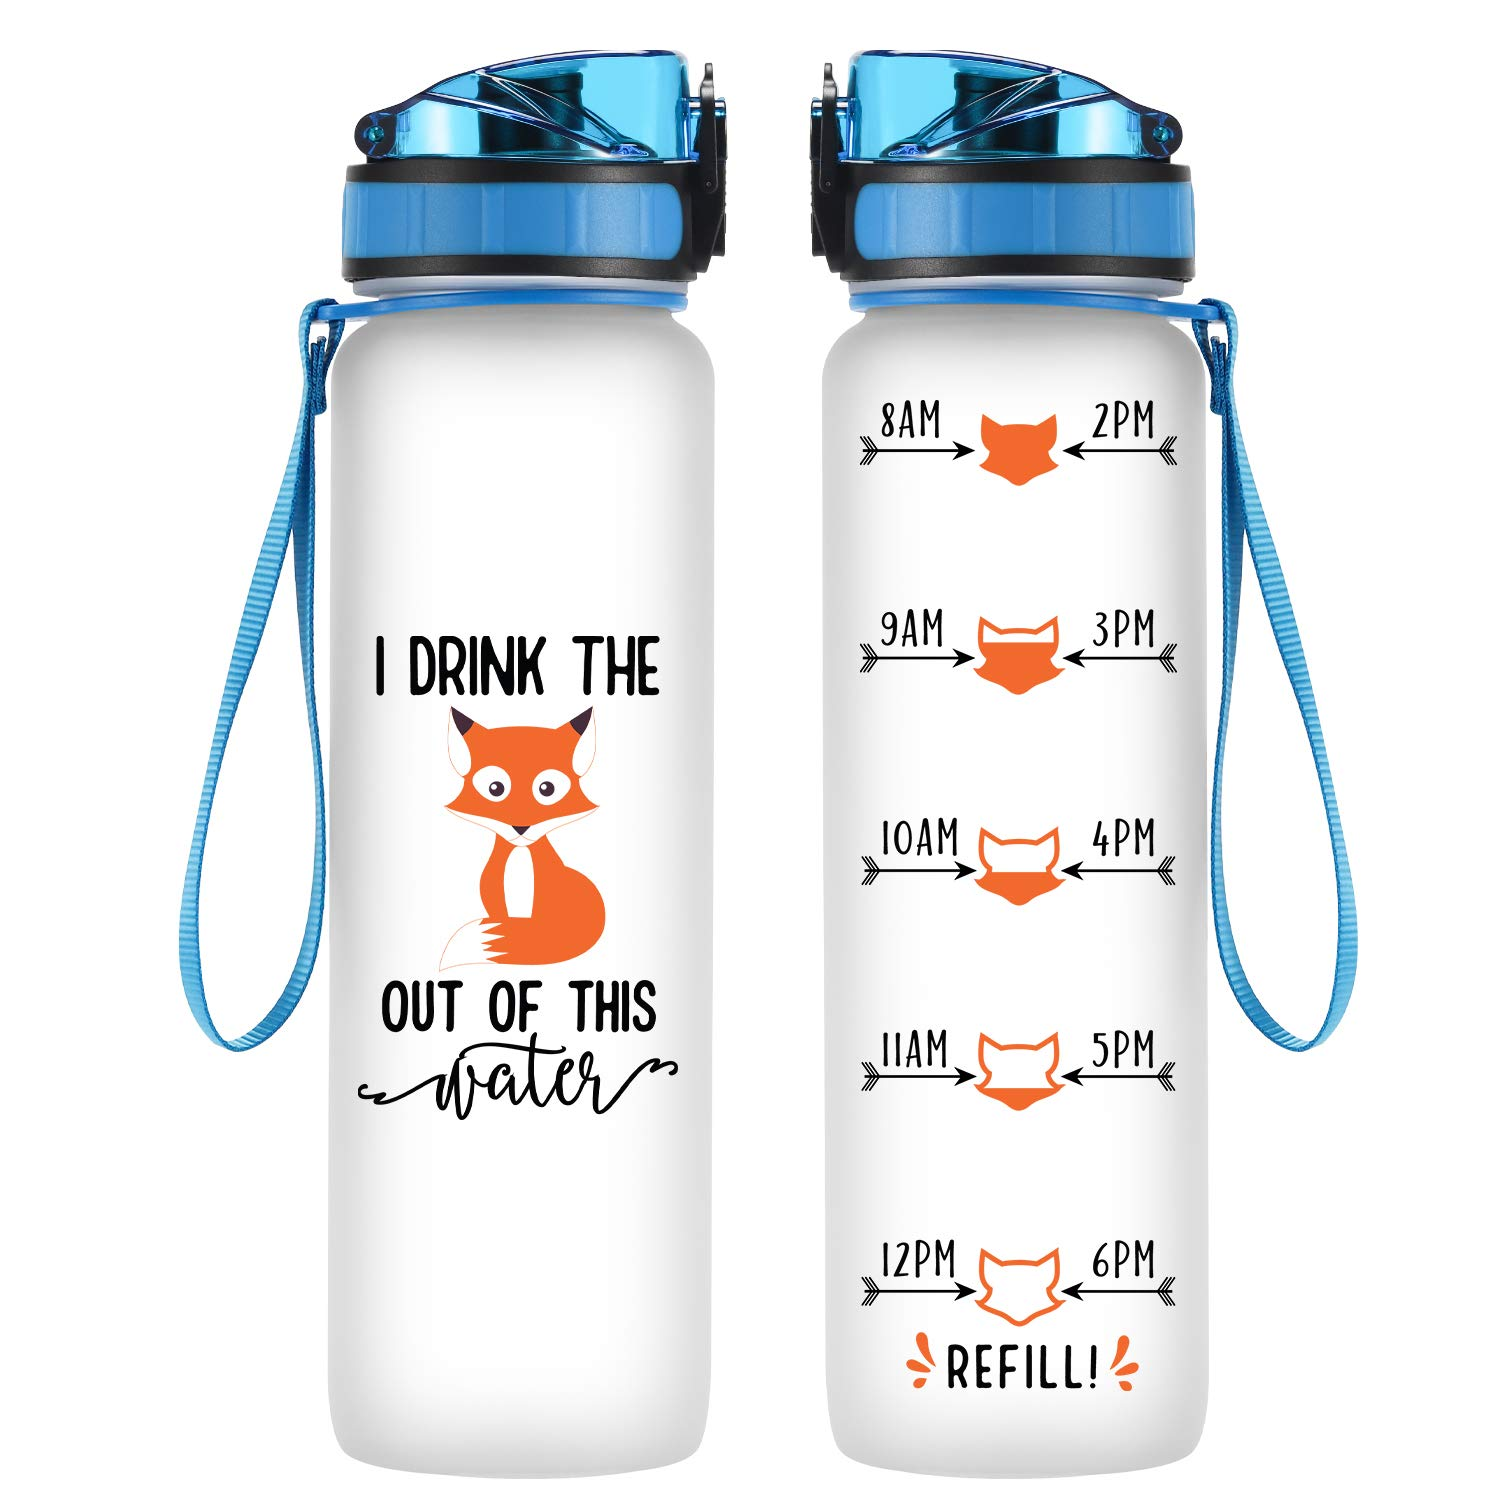 Coolife 32oz 1 Liter Motivational Tracking Water Bottle with Hourly Time  Marker - I Drink The Fox Out of This Water - Drink More Water - Funny